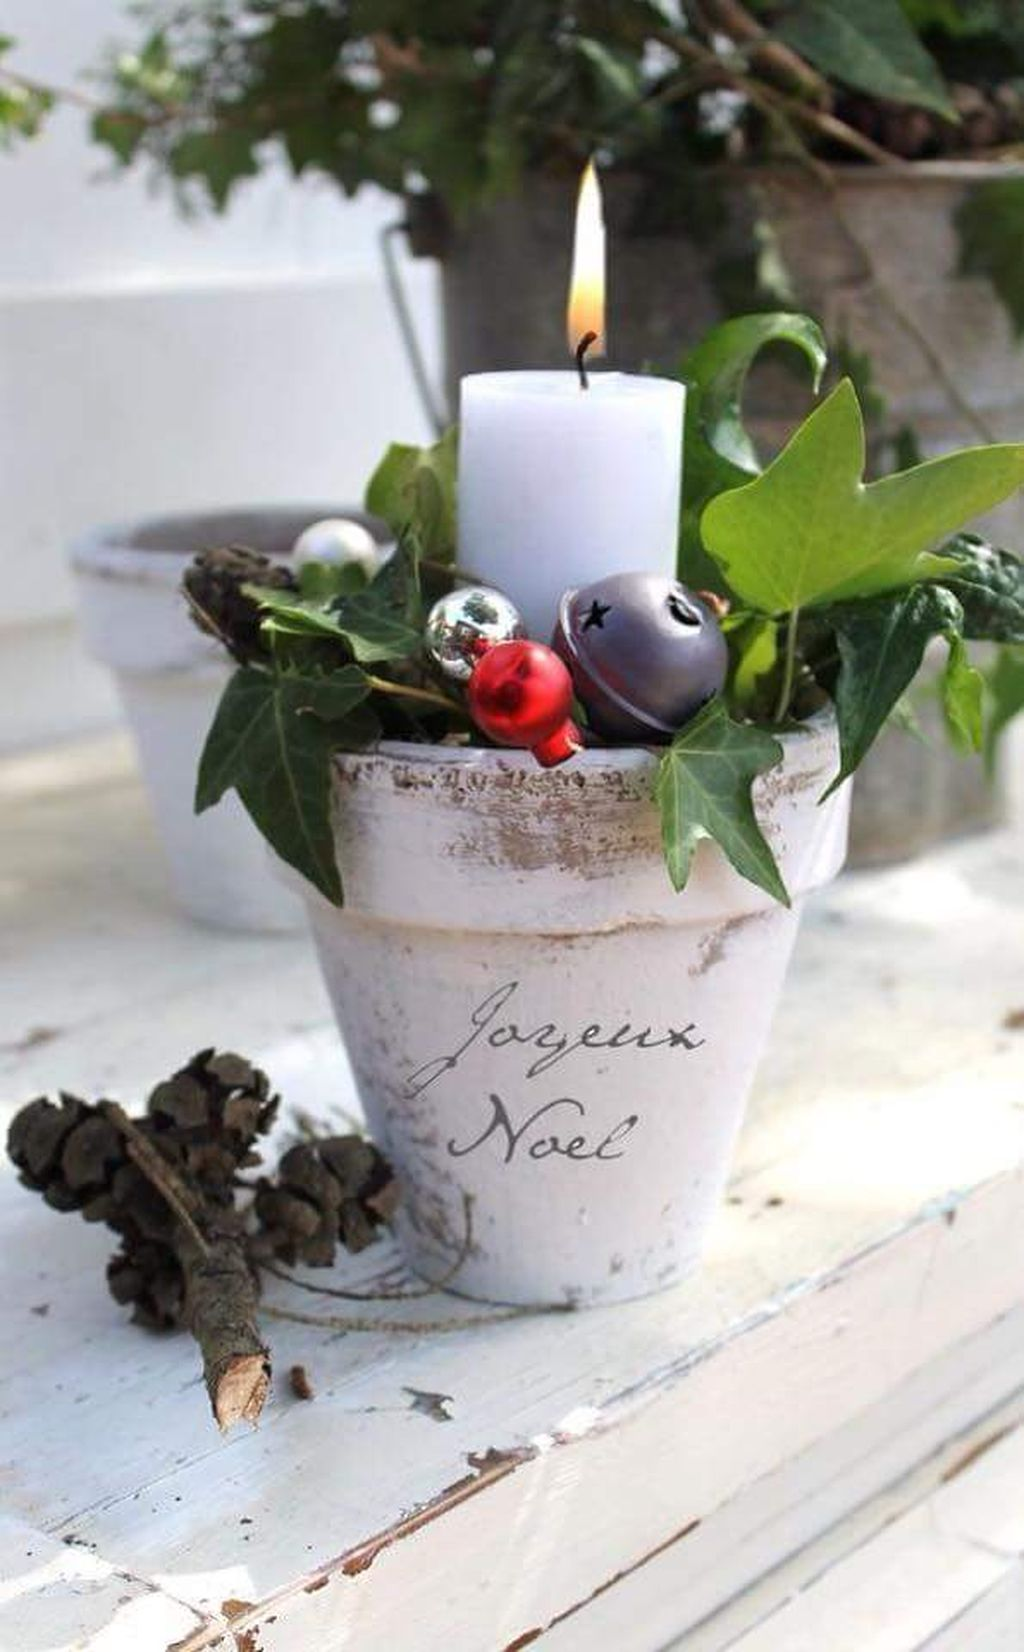 Inspiring Modern Rustic Christmas Centerpieces Ideas With Candles 06